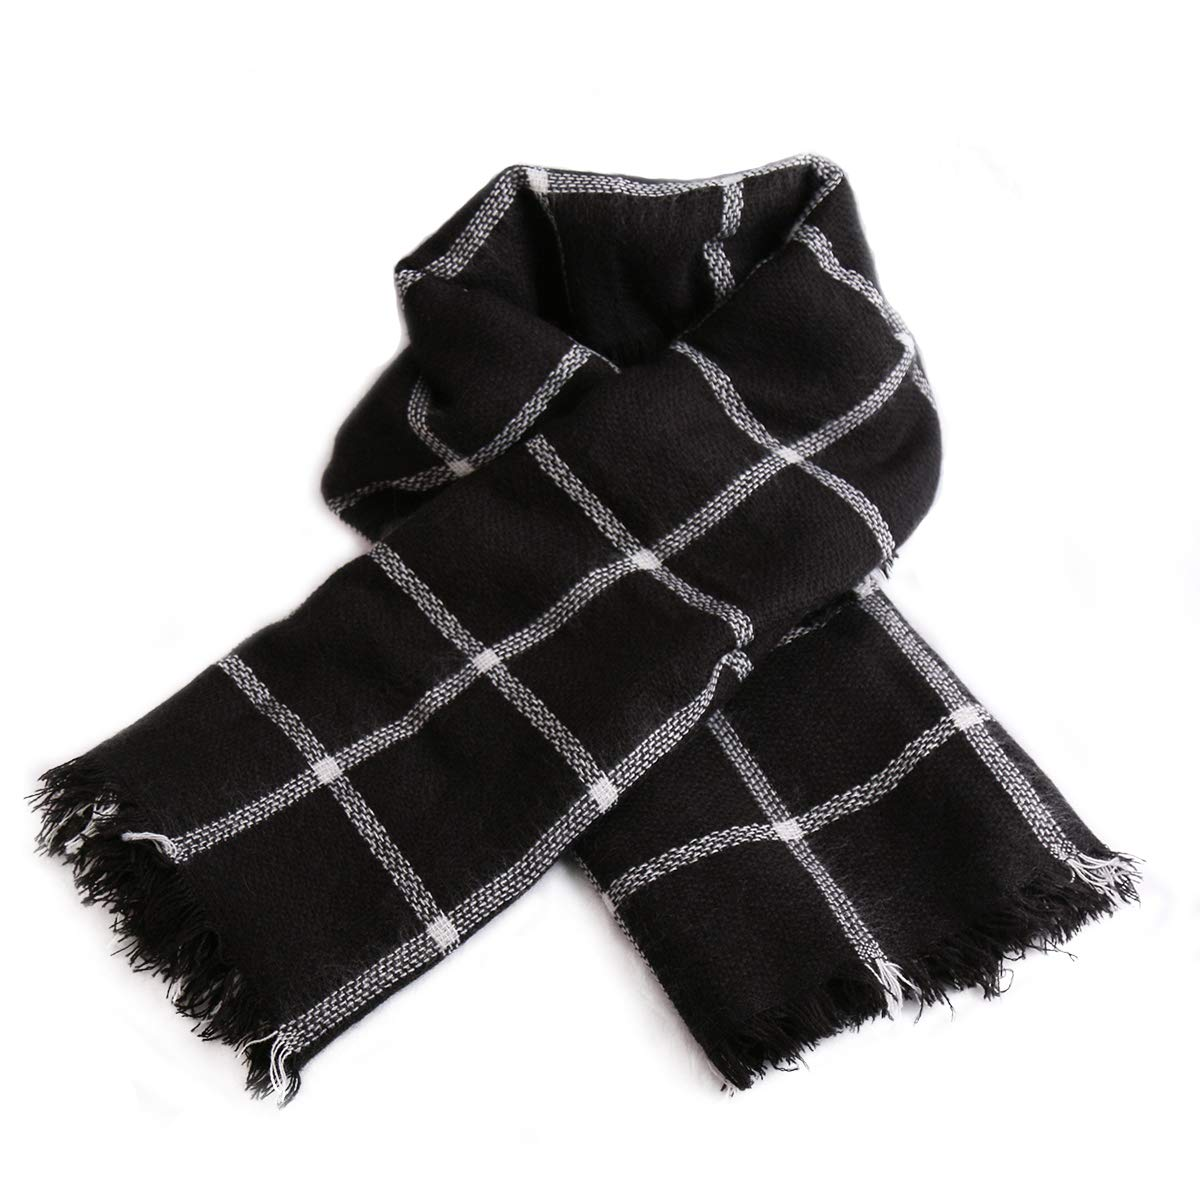 Women Square Plaid Blanket Scarf Shawl for Winter Wear Oversized Warm Soft Chunky Square Scarf (black)